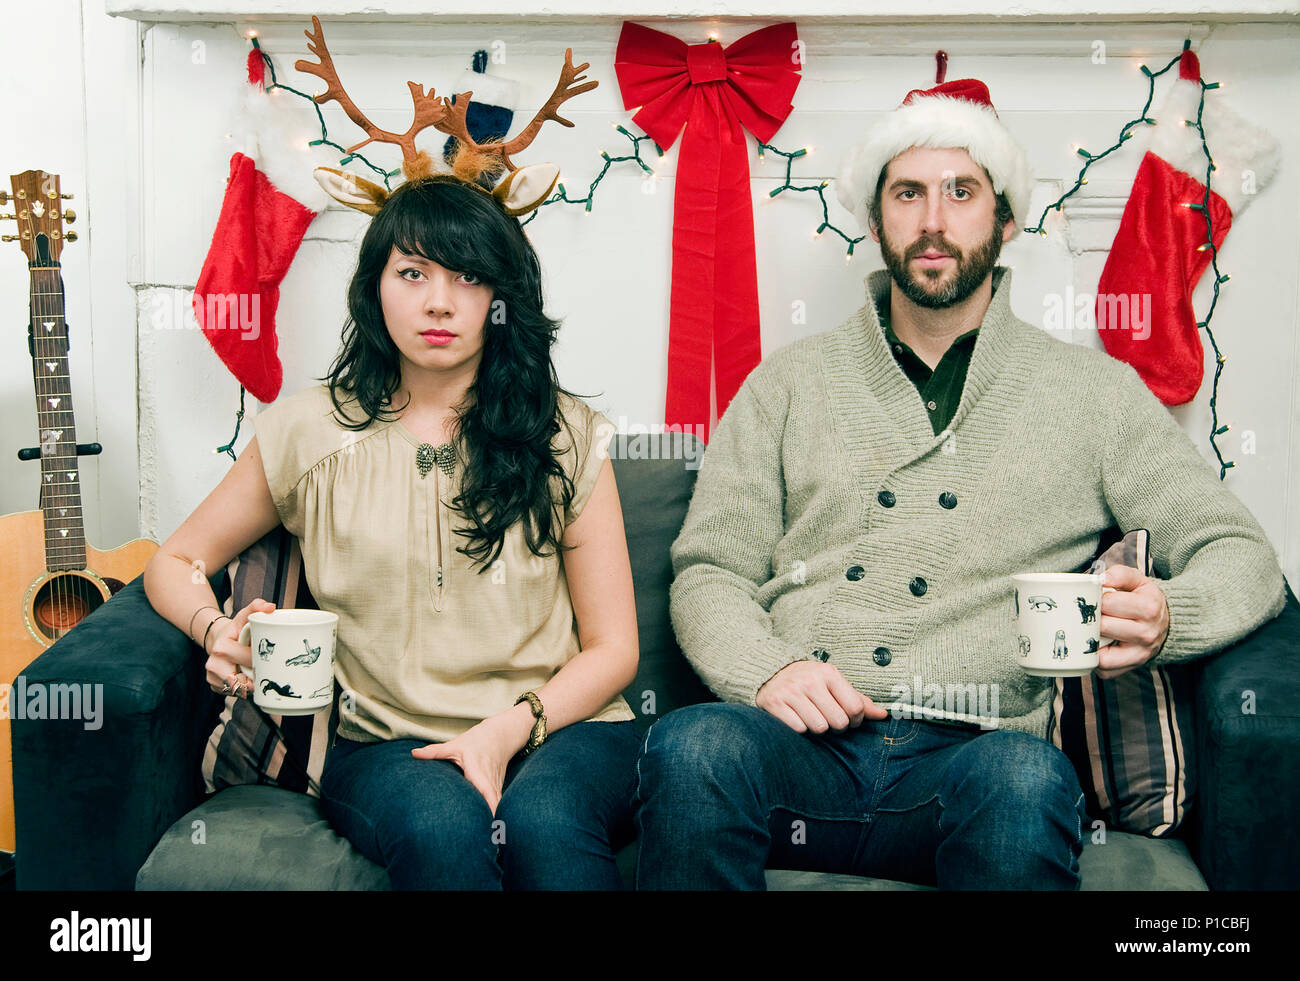 A couple (20's-30's) (twenties-thirties) holding mugs and sitting on a sofa posting for an ironic holiday portrait. - Stock Image